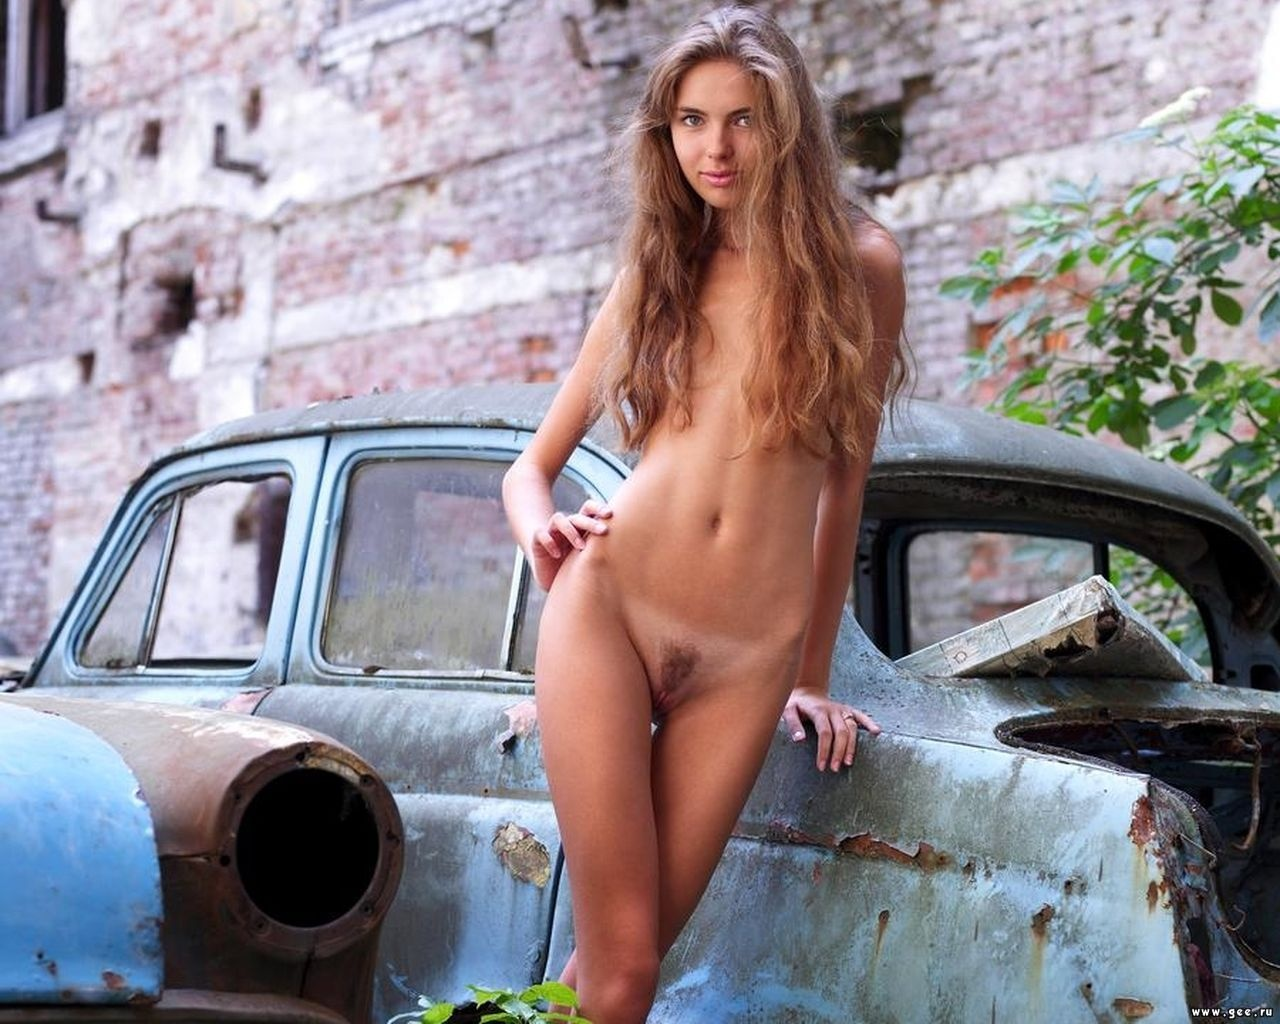 hot cars and girl naked